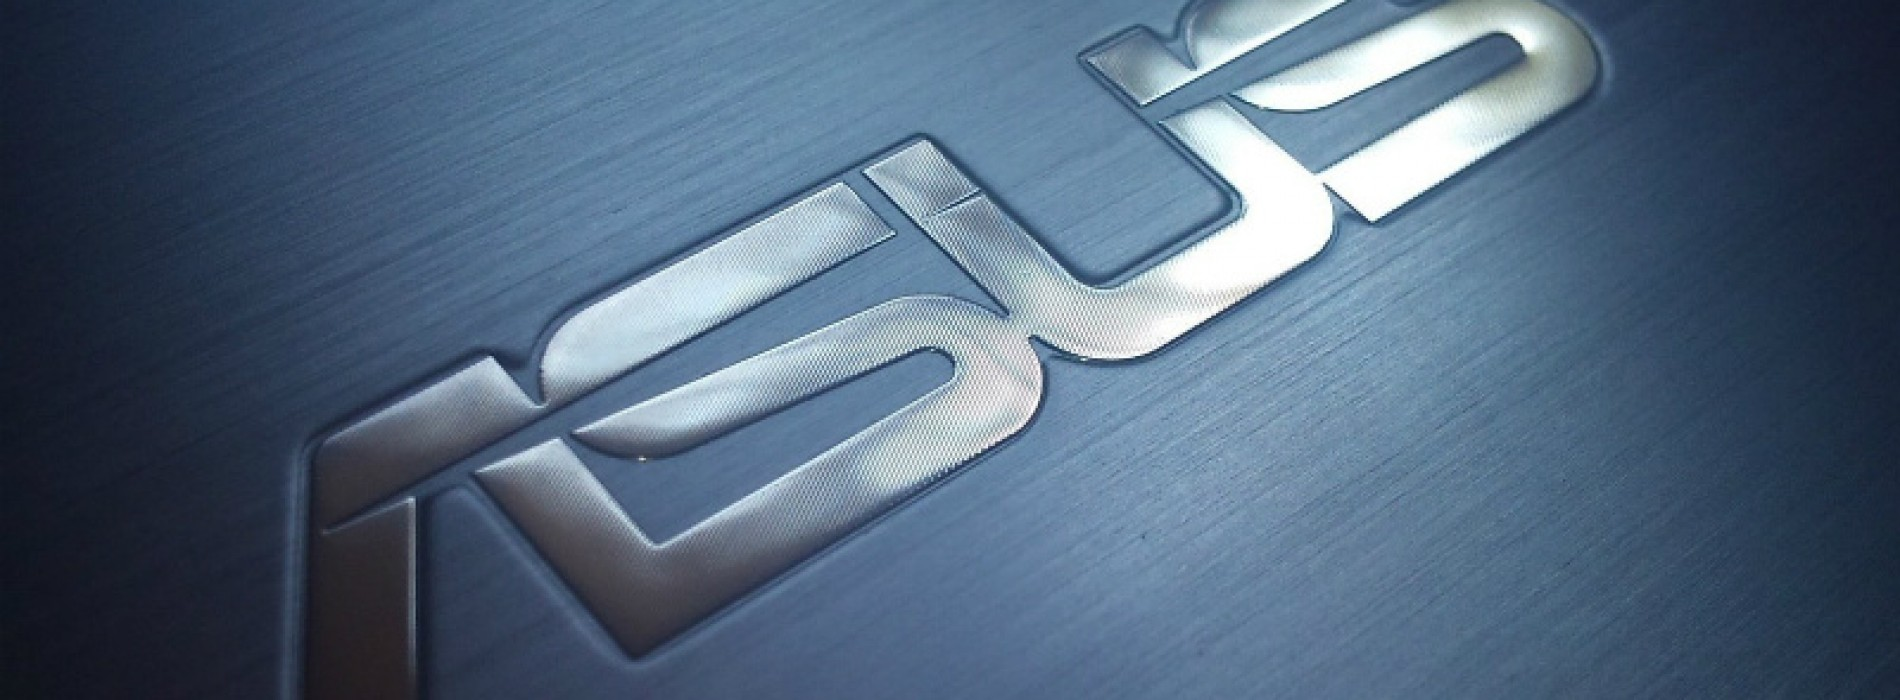 Asus to debut first Android Wear watch in early September, report claims